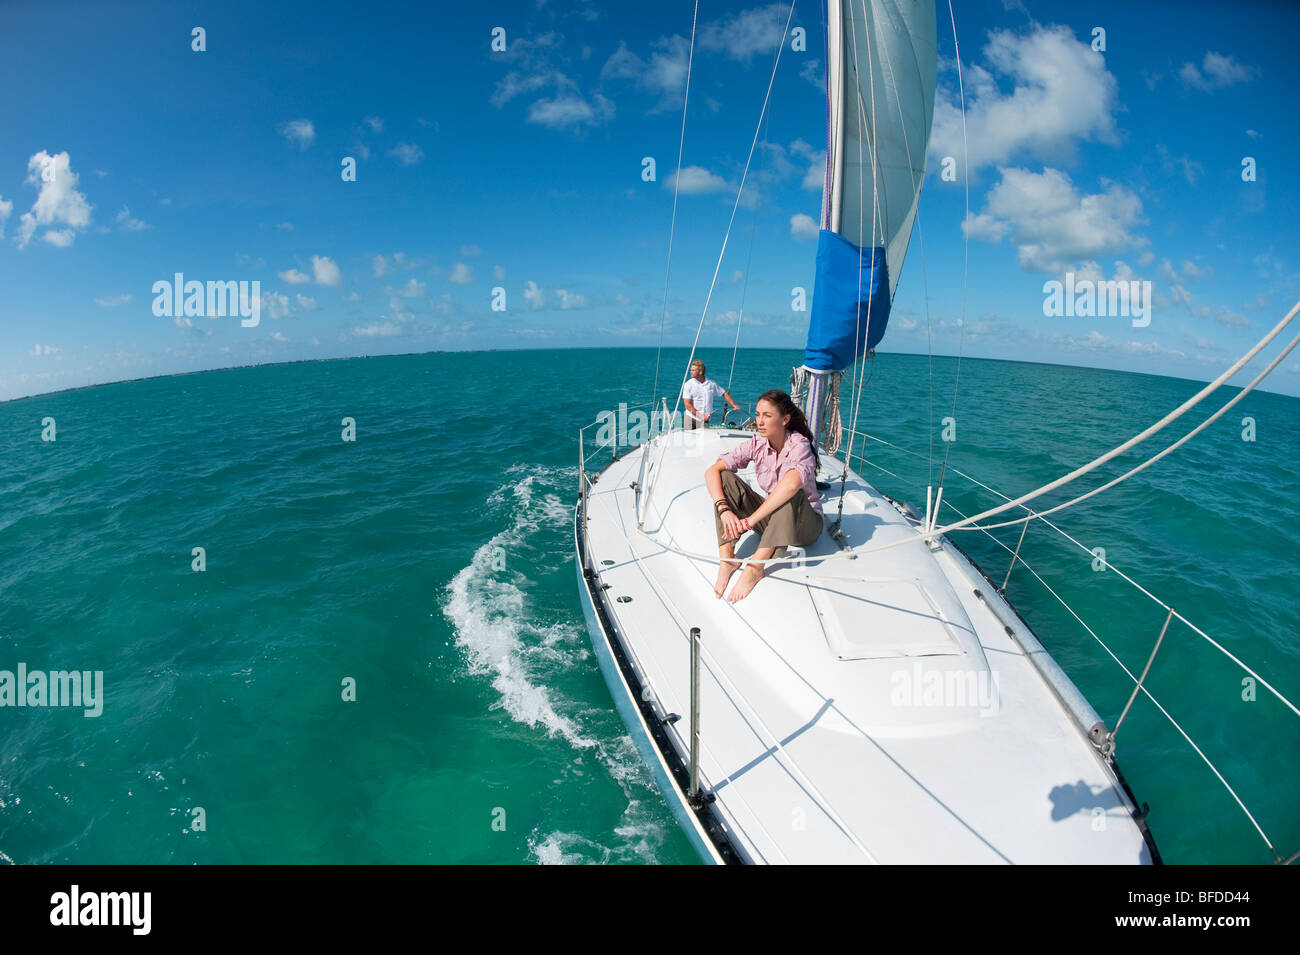 A man and woman sailing off of Florida. - Stock Image